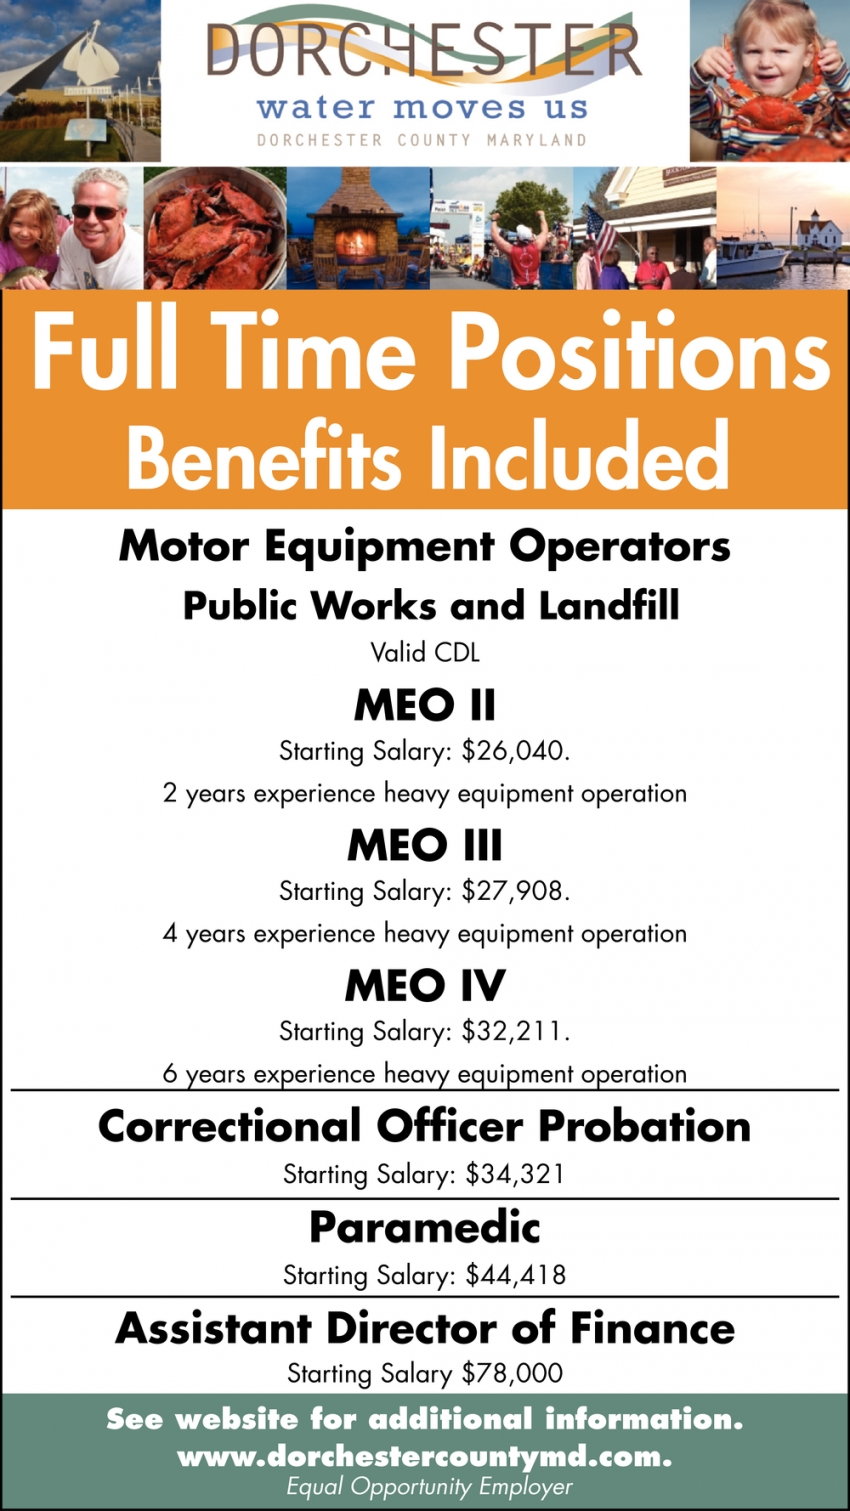 Motor Equipment Operators - Correctional Officer Probation - Paramedic - Assistant Director Of Finance